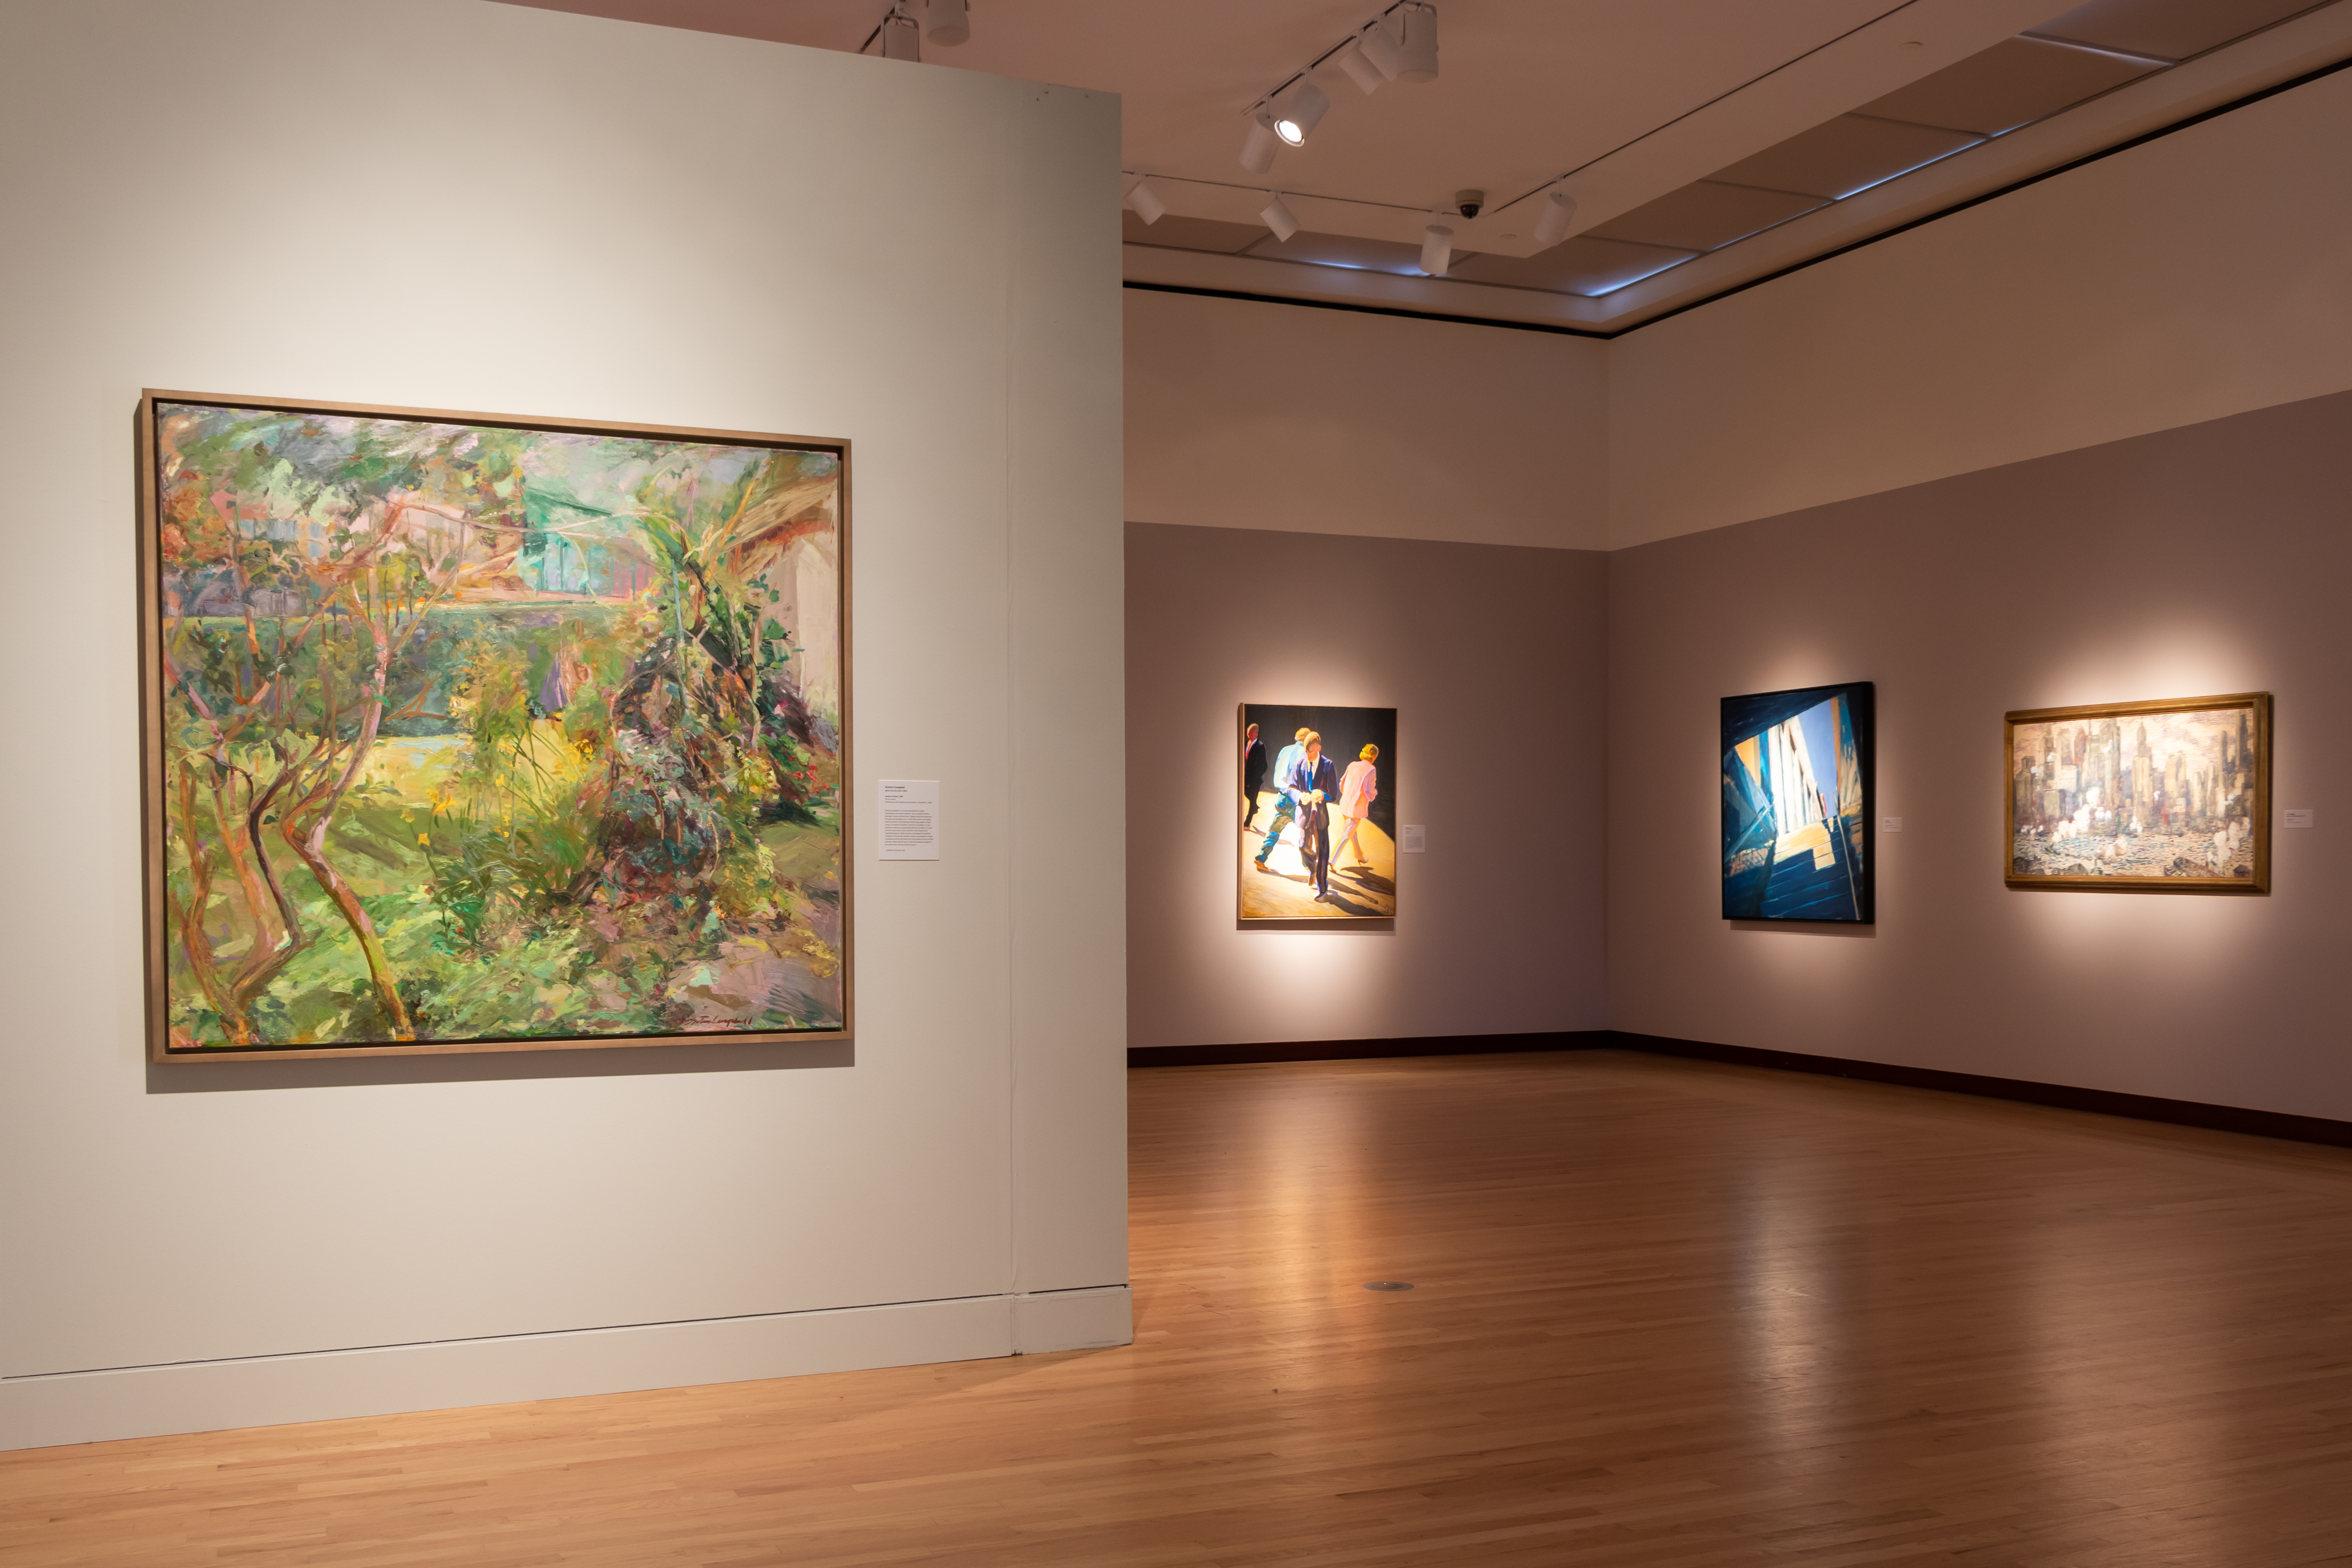 """Pictured: Gretna Campbell, """"Garden in Brazil,"""" William Clutz, """"Autumn Street,"""" David Kapp, """"Coming out of the Subway,"""" Guy Carleton Wiggins, """"Manhattan"""""""